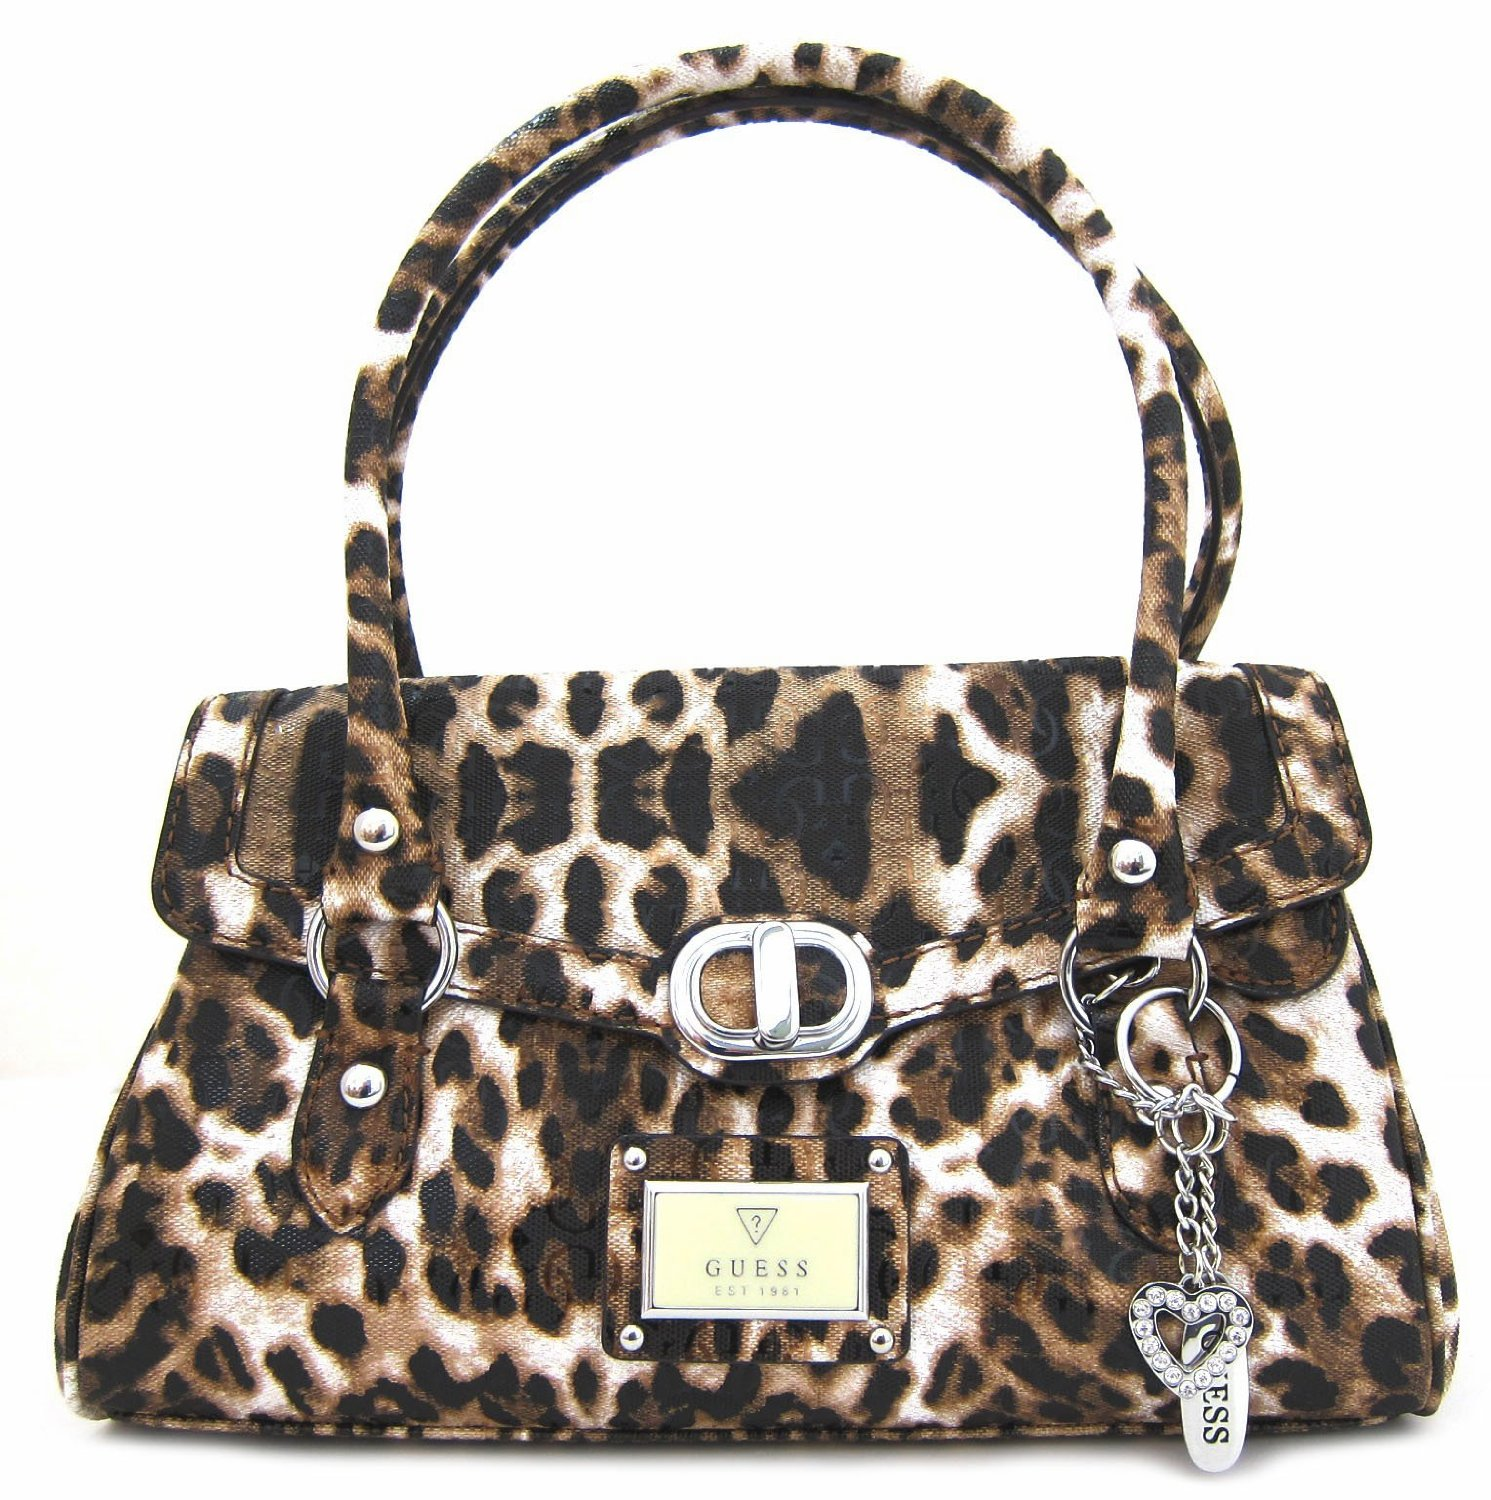 Guess Women's Veracruz Satchel Cheetah Handbag